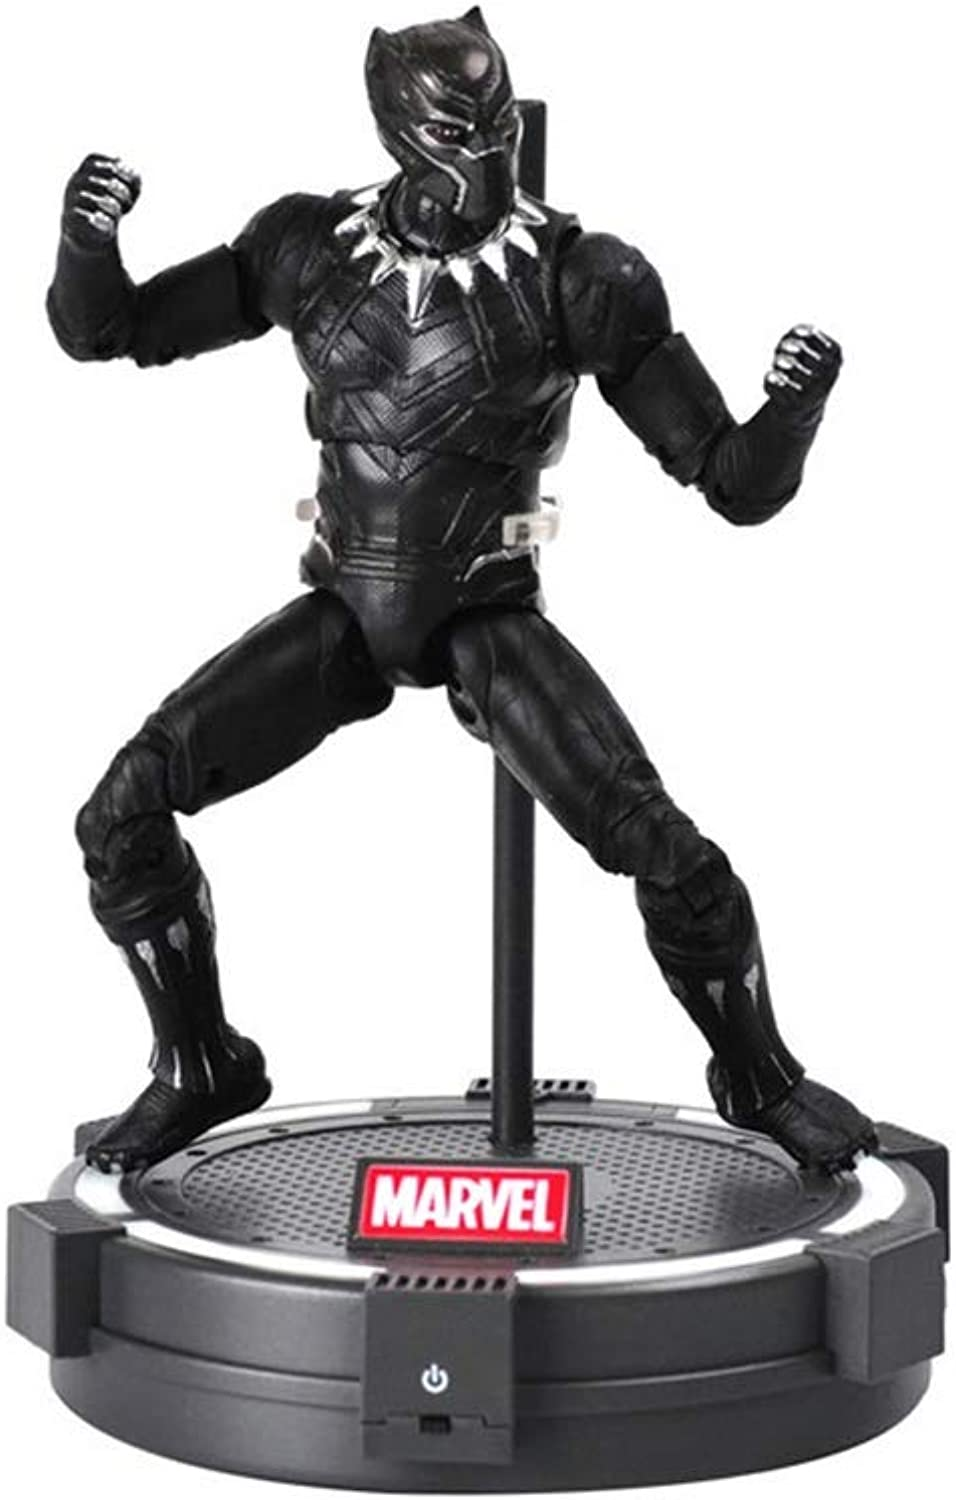 MKJYDM Toy Model Movie Characters Avengers Panthers Souvenirs Collections Handicrafts Panthers 17cm Toy statue